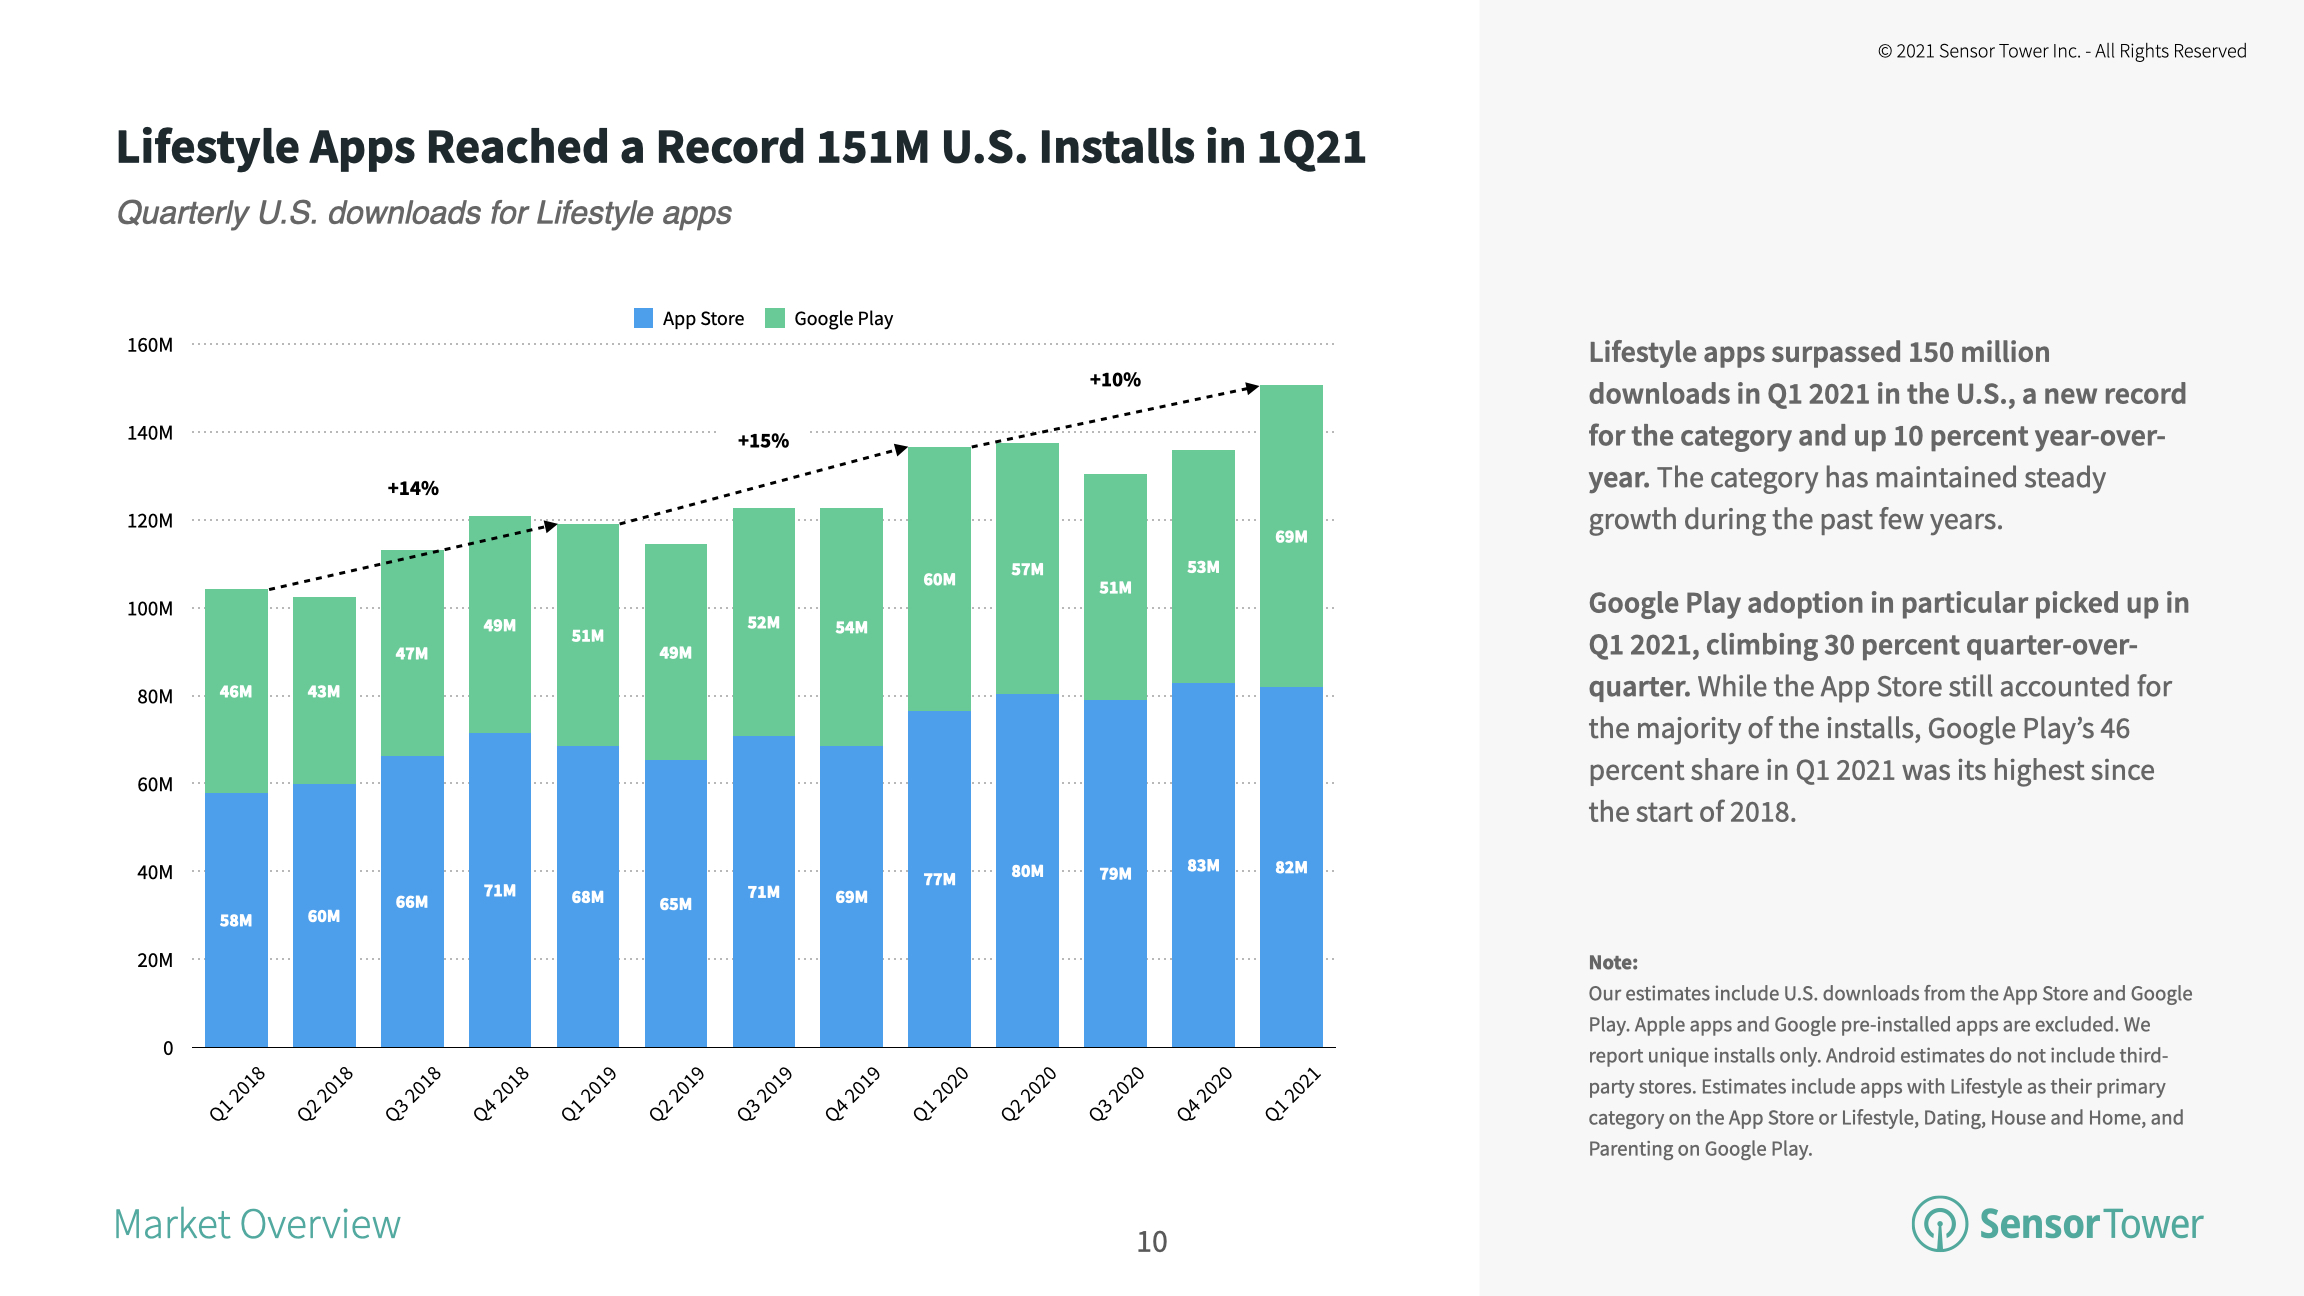 Lifestyle apps hit a record 151 million US installs in the first quarter of 2021